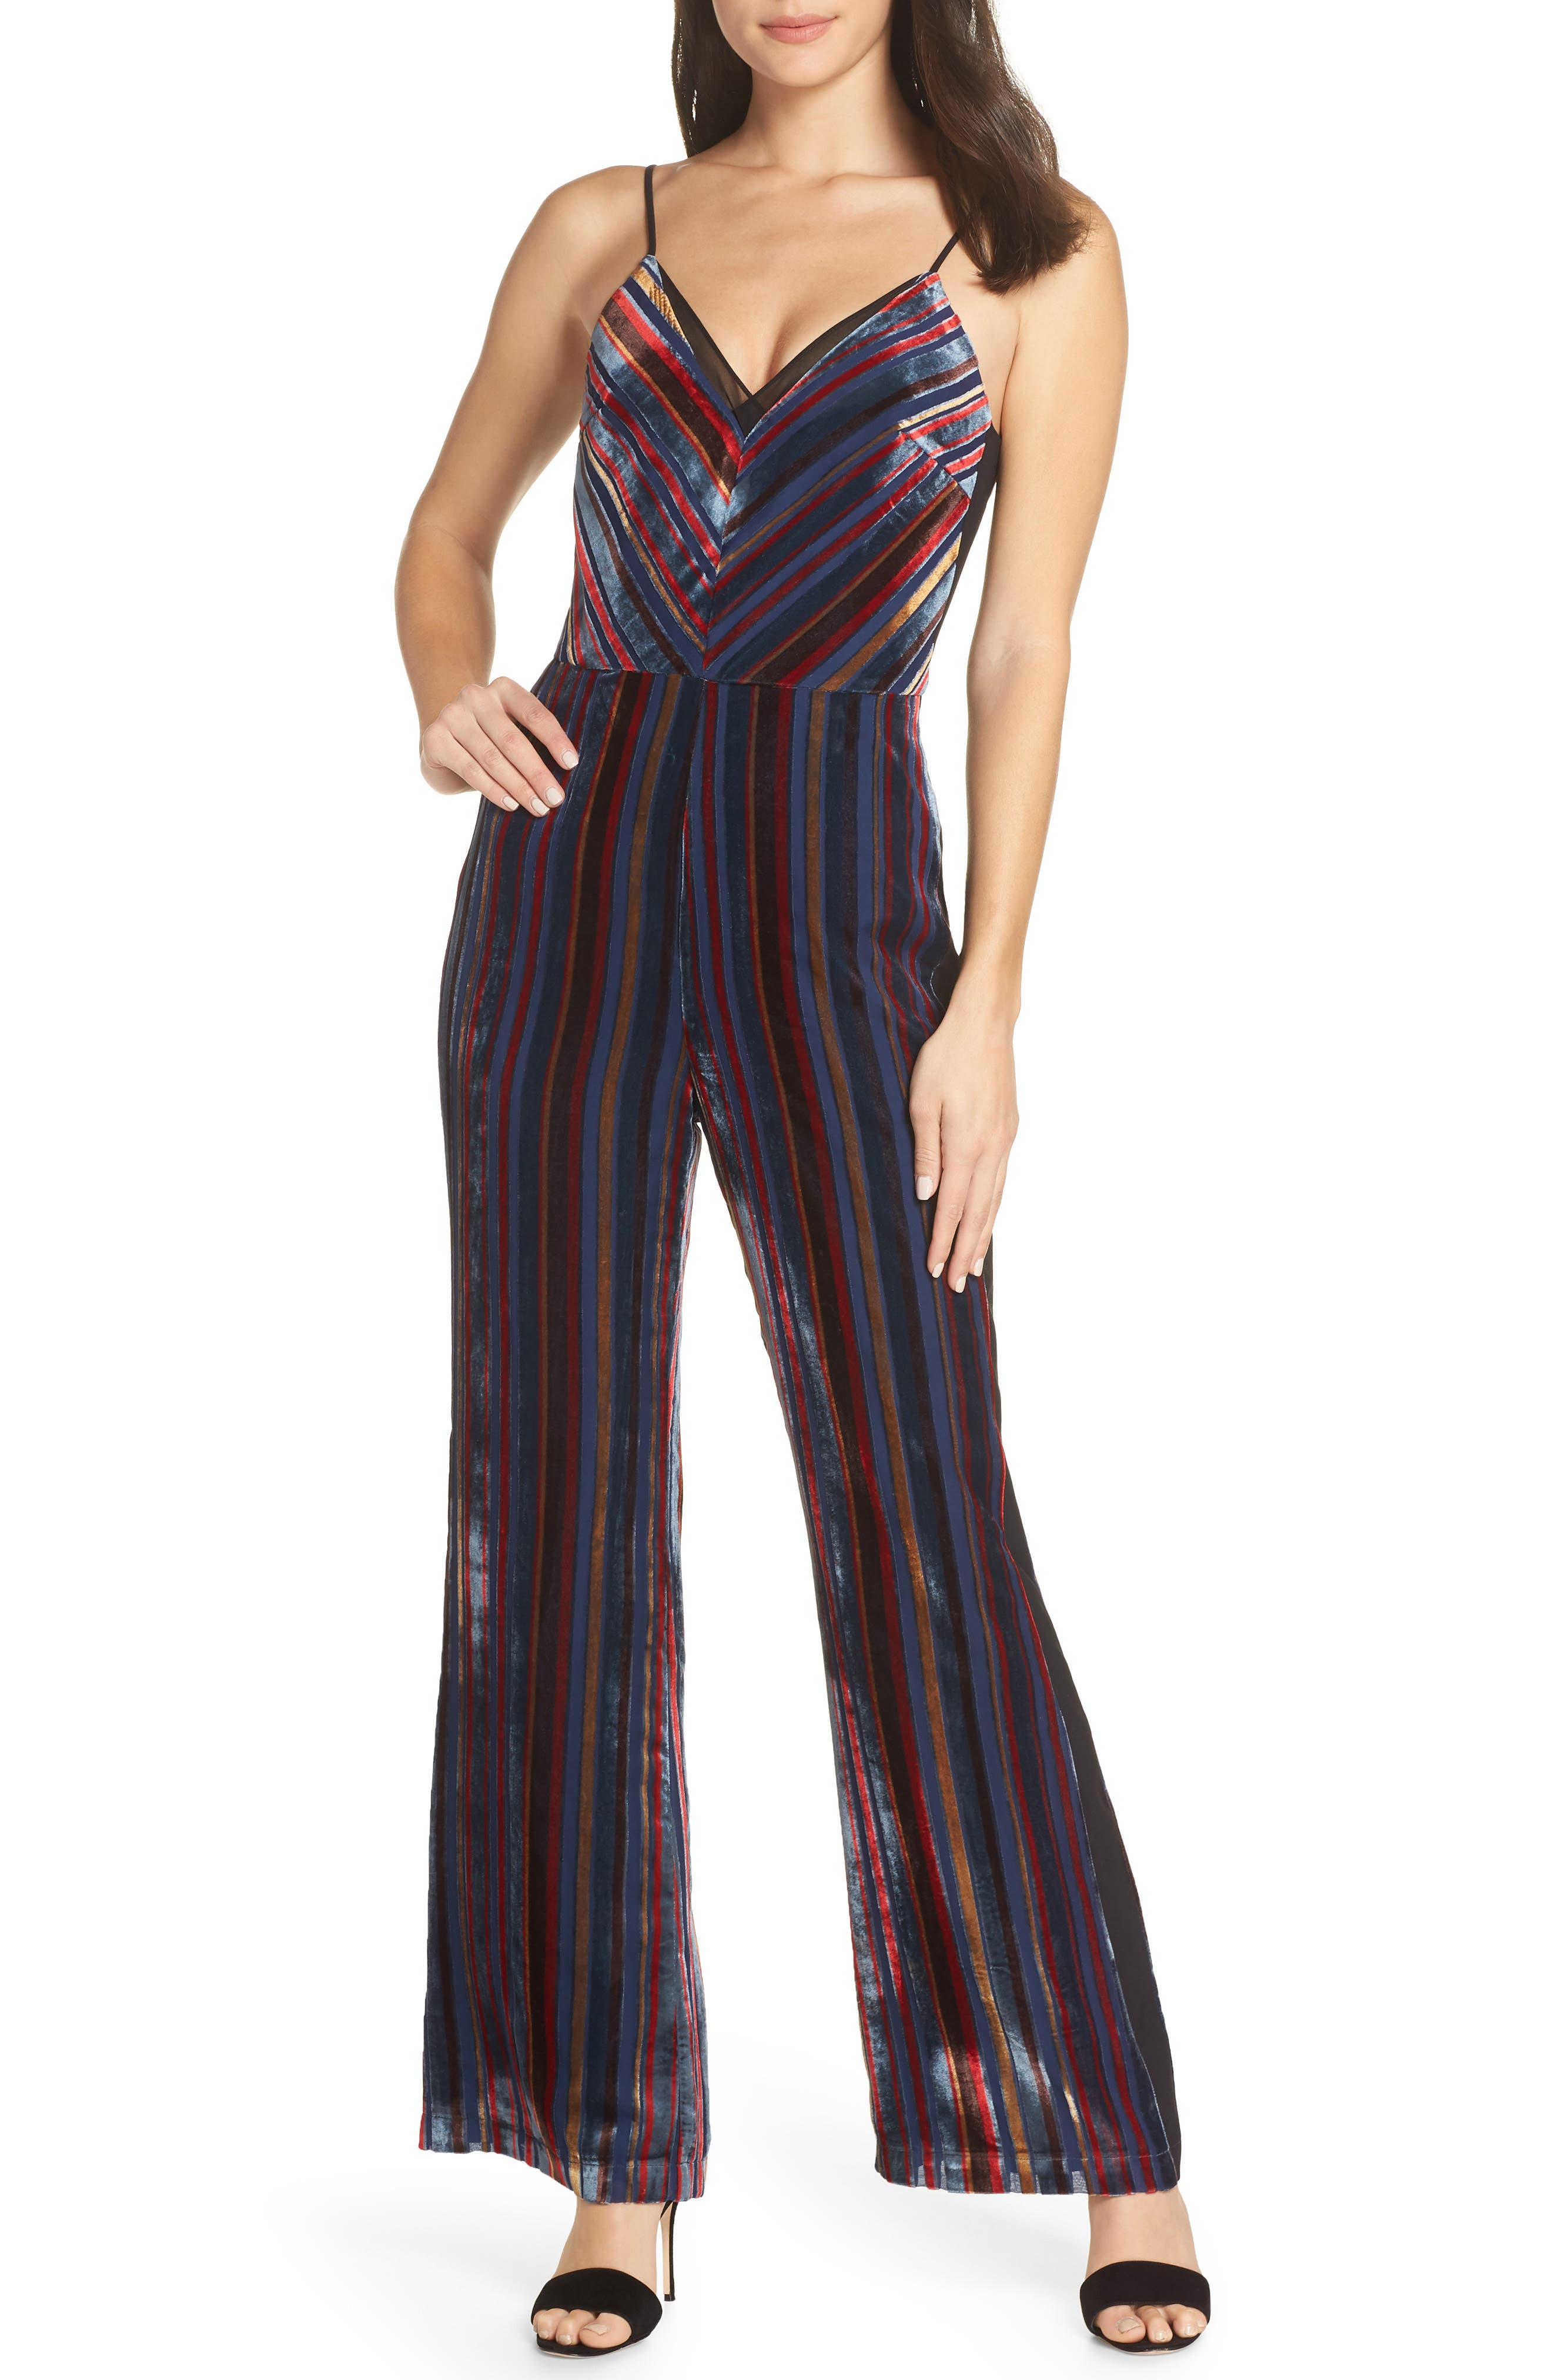 HARLYN Stripe Velvet Jumpsuit in Navy Multi